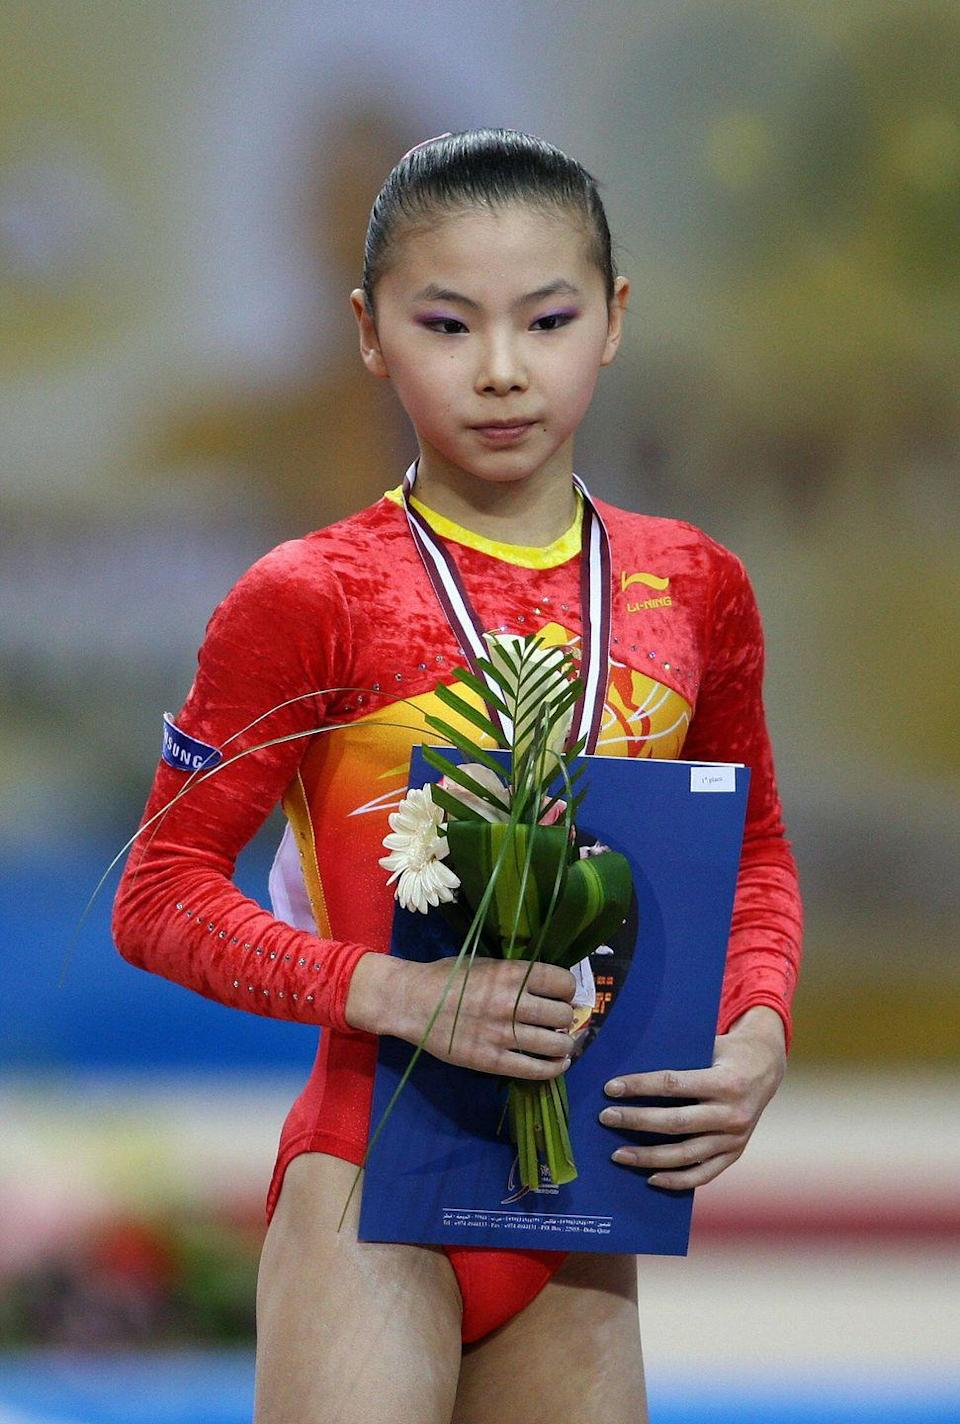 """<p>He Kexin won two gold medals at the Beijing Olympics, however an <a href=""""https://olympics.com/en/athletes/kexin-he"""" rel=""""nofollow noopener"""" target=""""_blank"""" data-ylk=""""slk:investigation"""" class=""""link rapid-noclick-resp"""">investigation</a> into the Chinese gymnast's age was the real headline grabber at the time. Kexin returned for competition in the 2012 Olympic games, winning a silver medal in the uneven bars. </p>"""